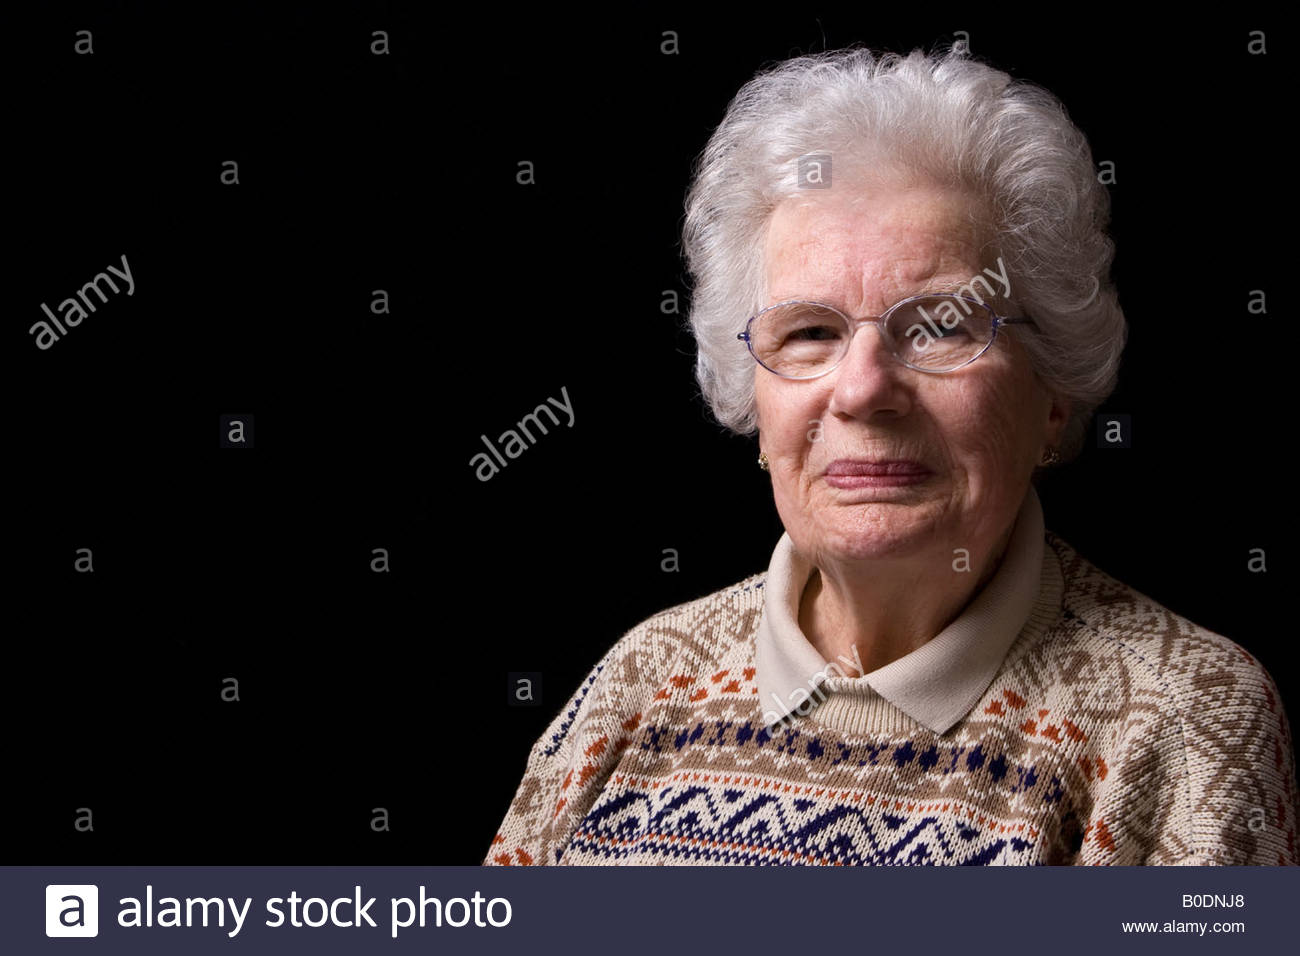 An old woman smiling. - Stock Image